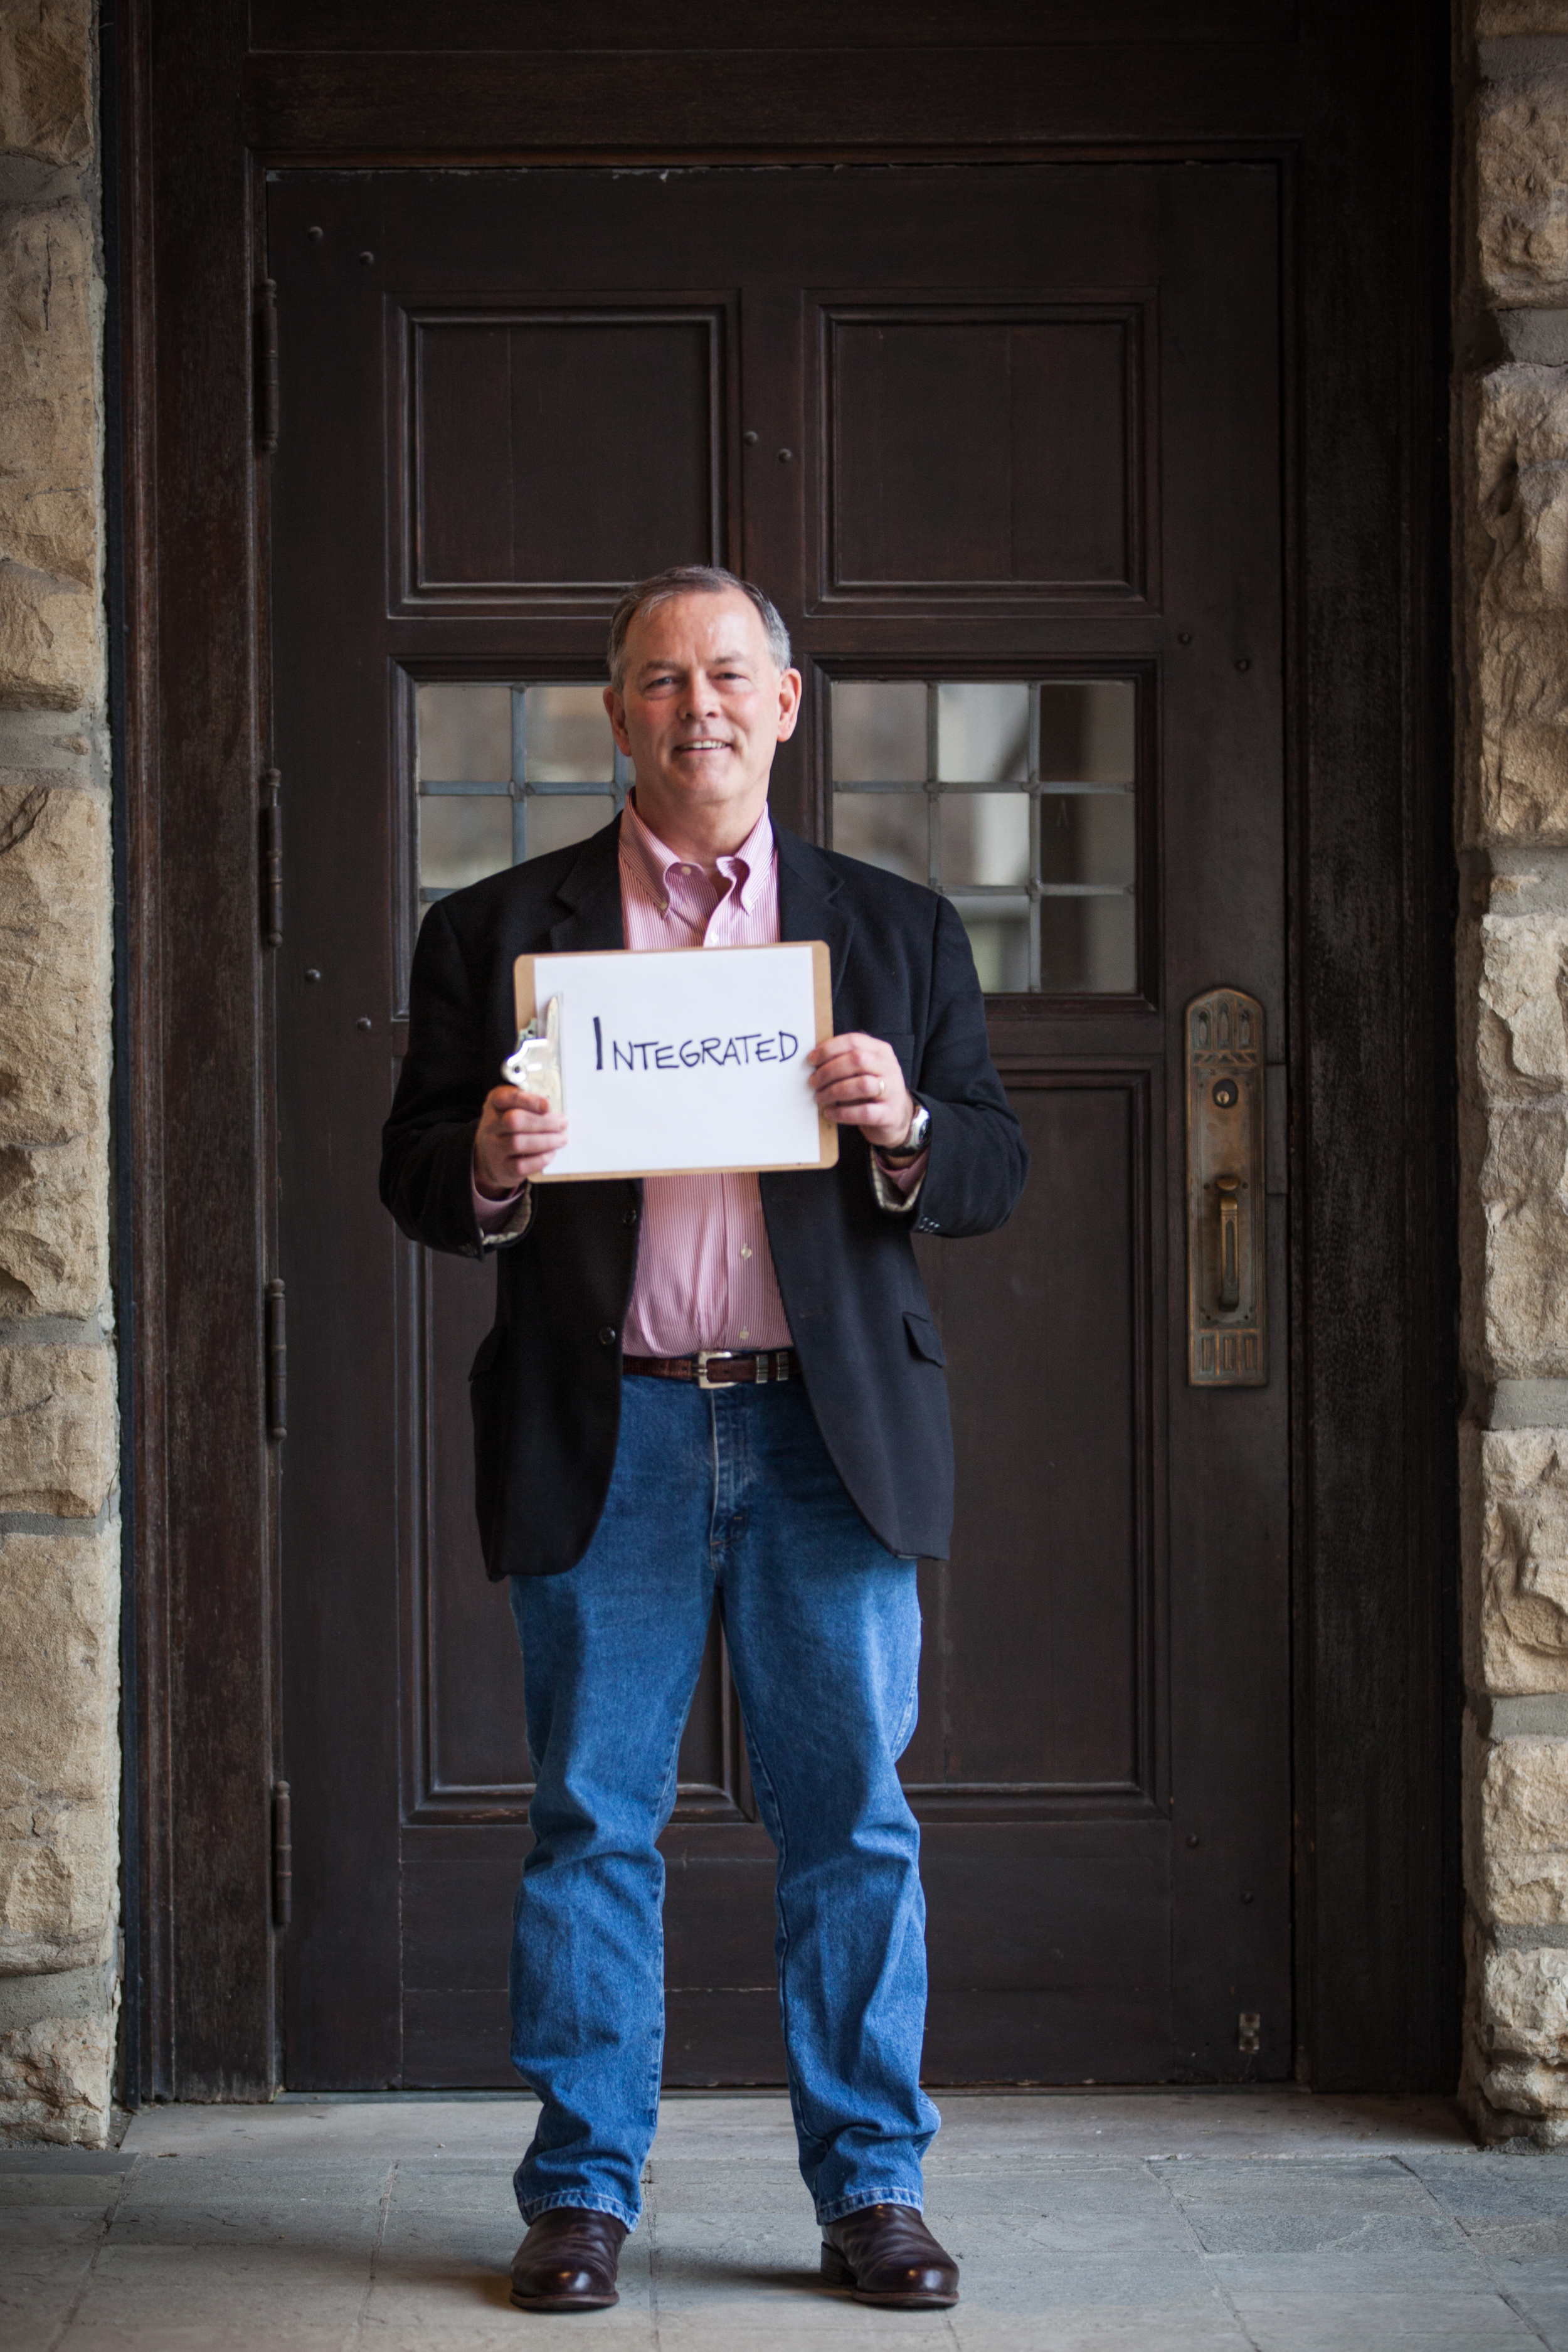 Man holding a sign saying integrated.